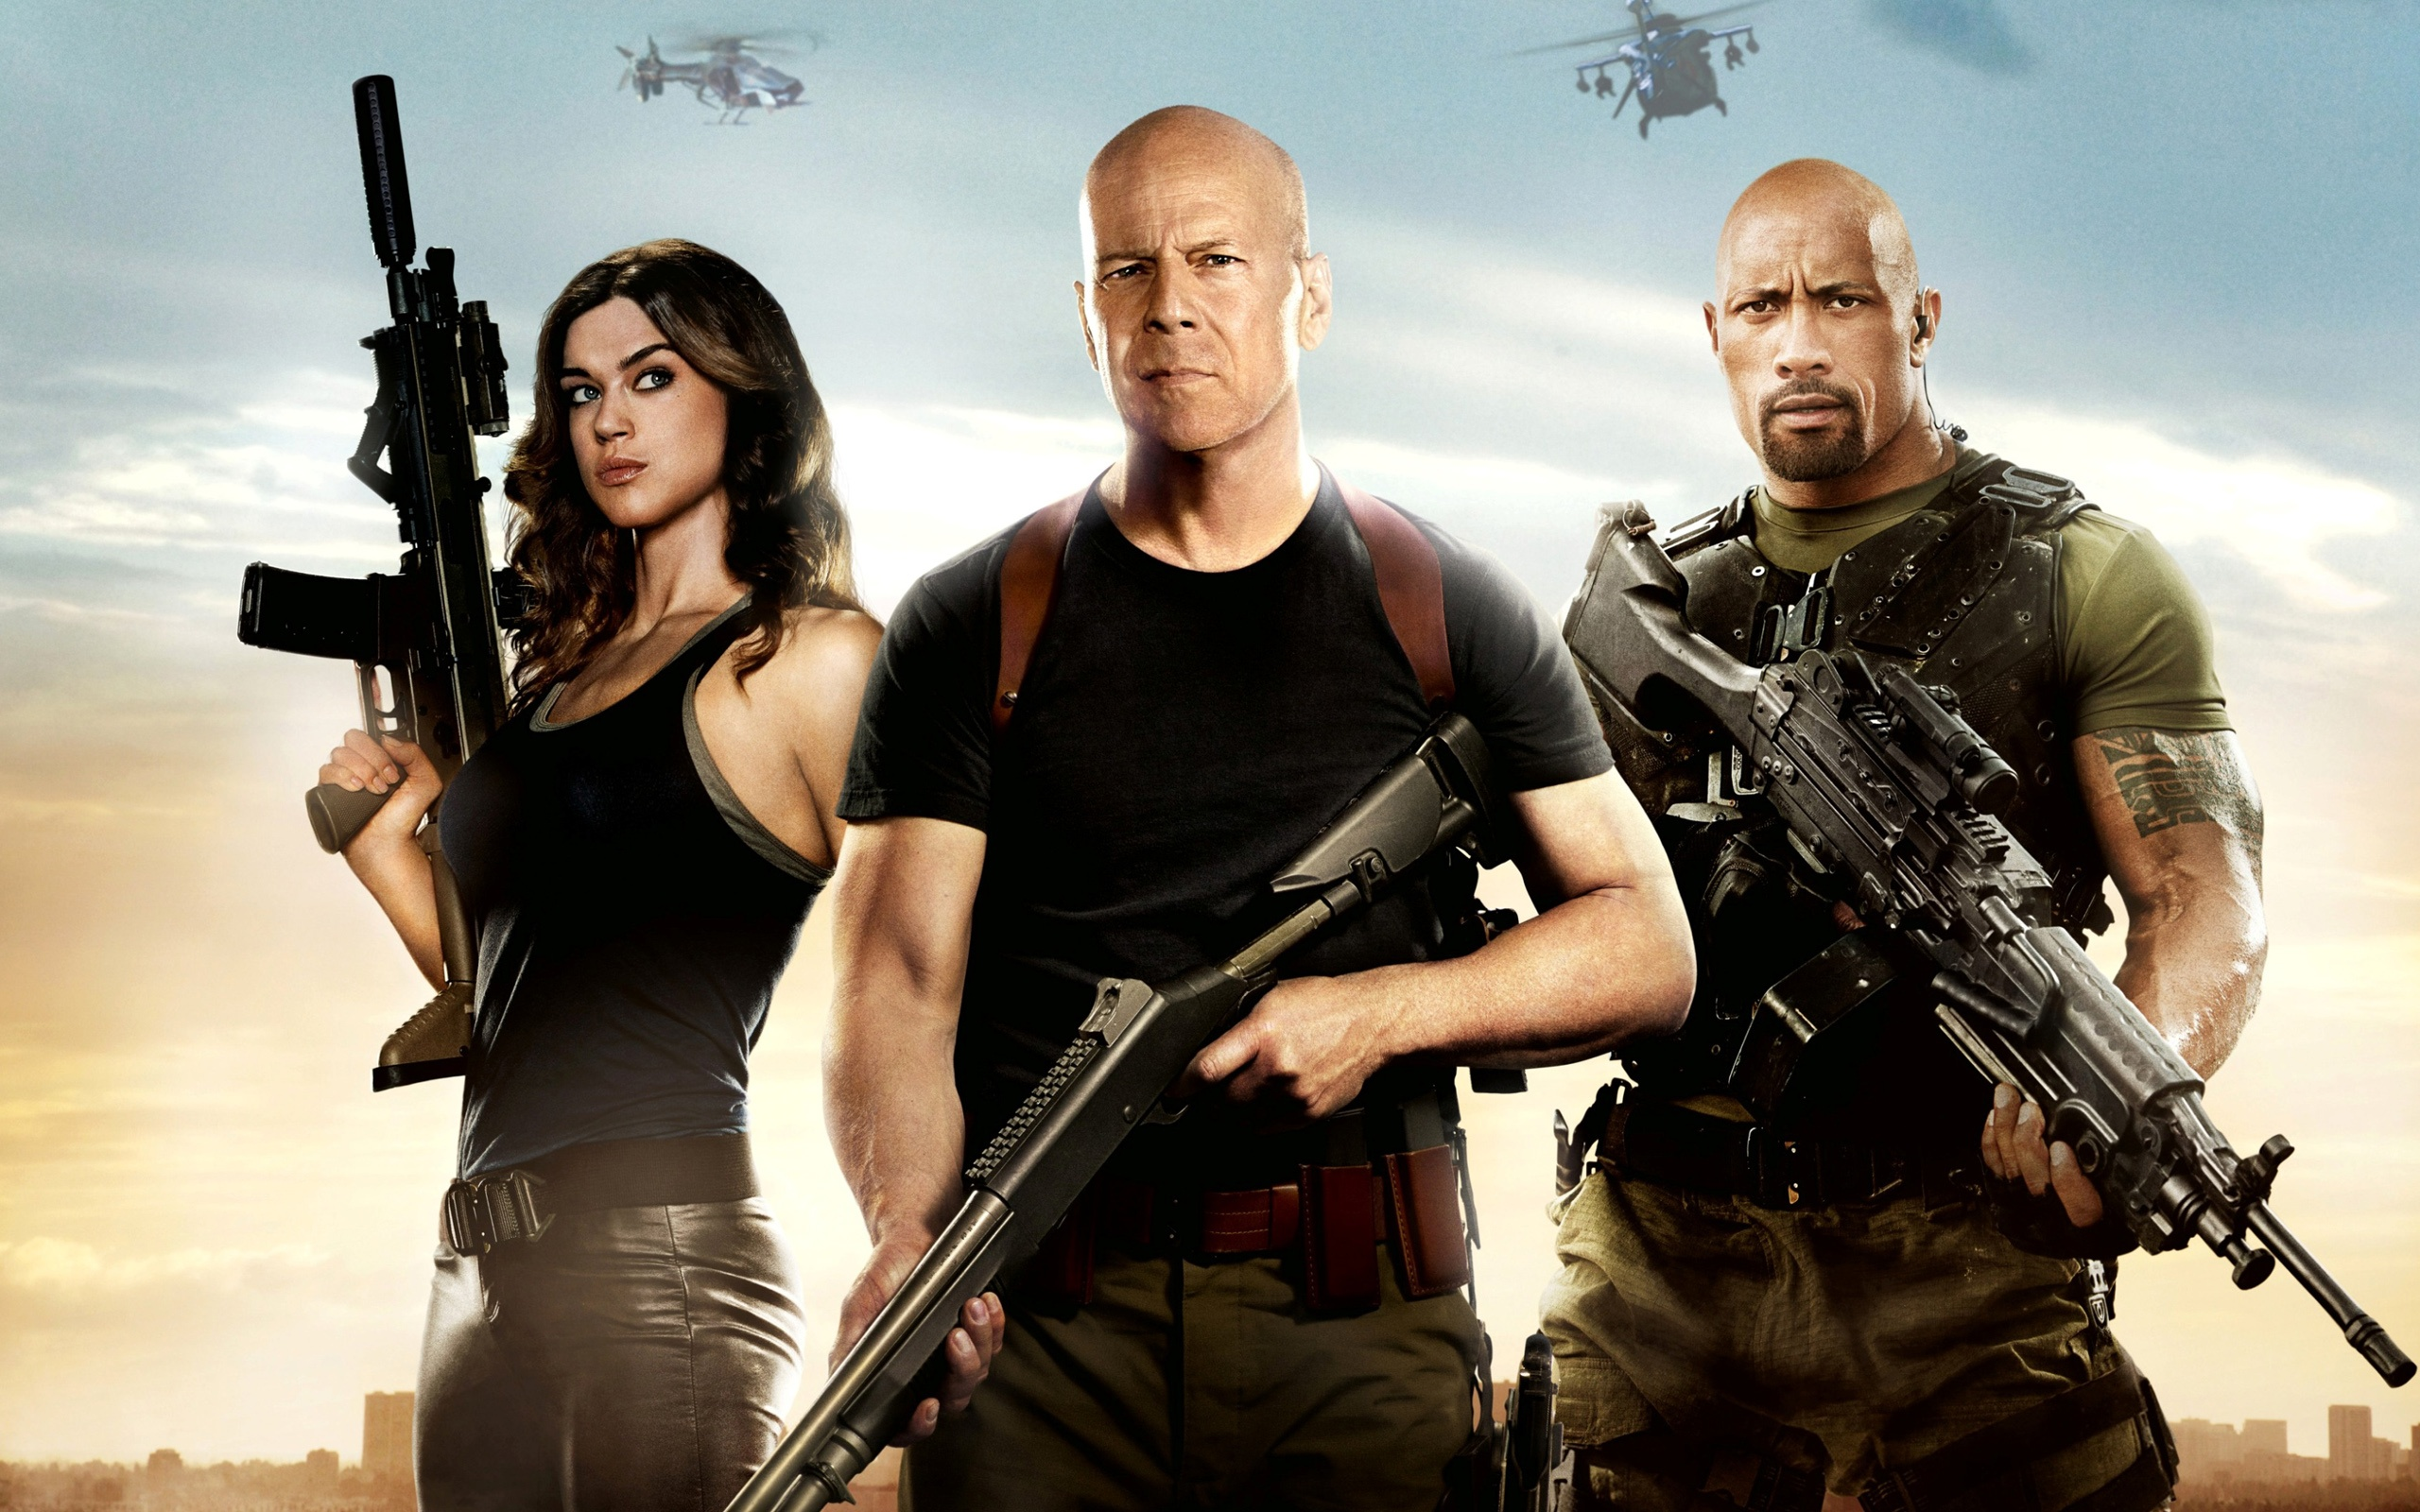 G I Joe Retaliation Wallpapers In Jpg Format For Free Download